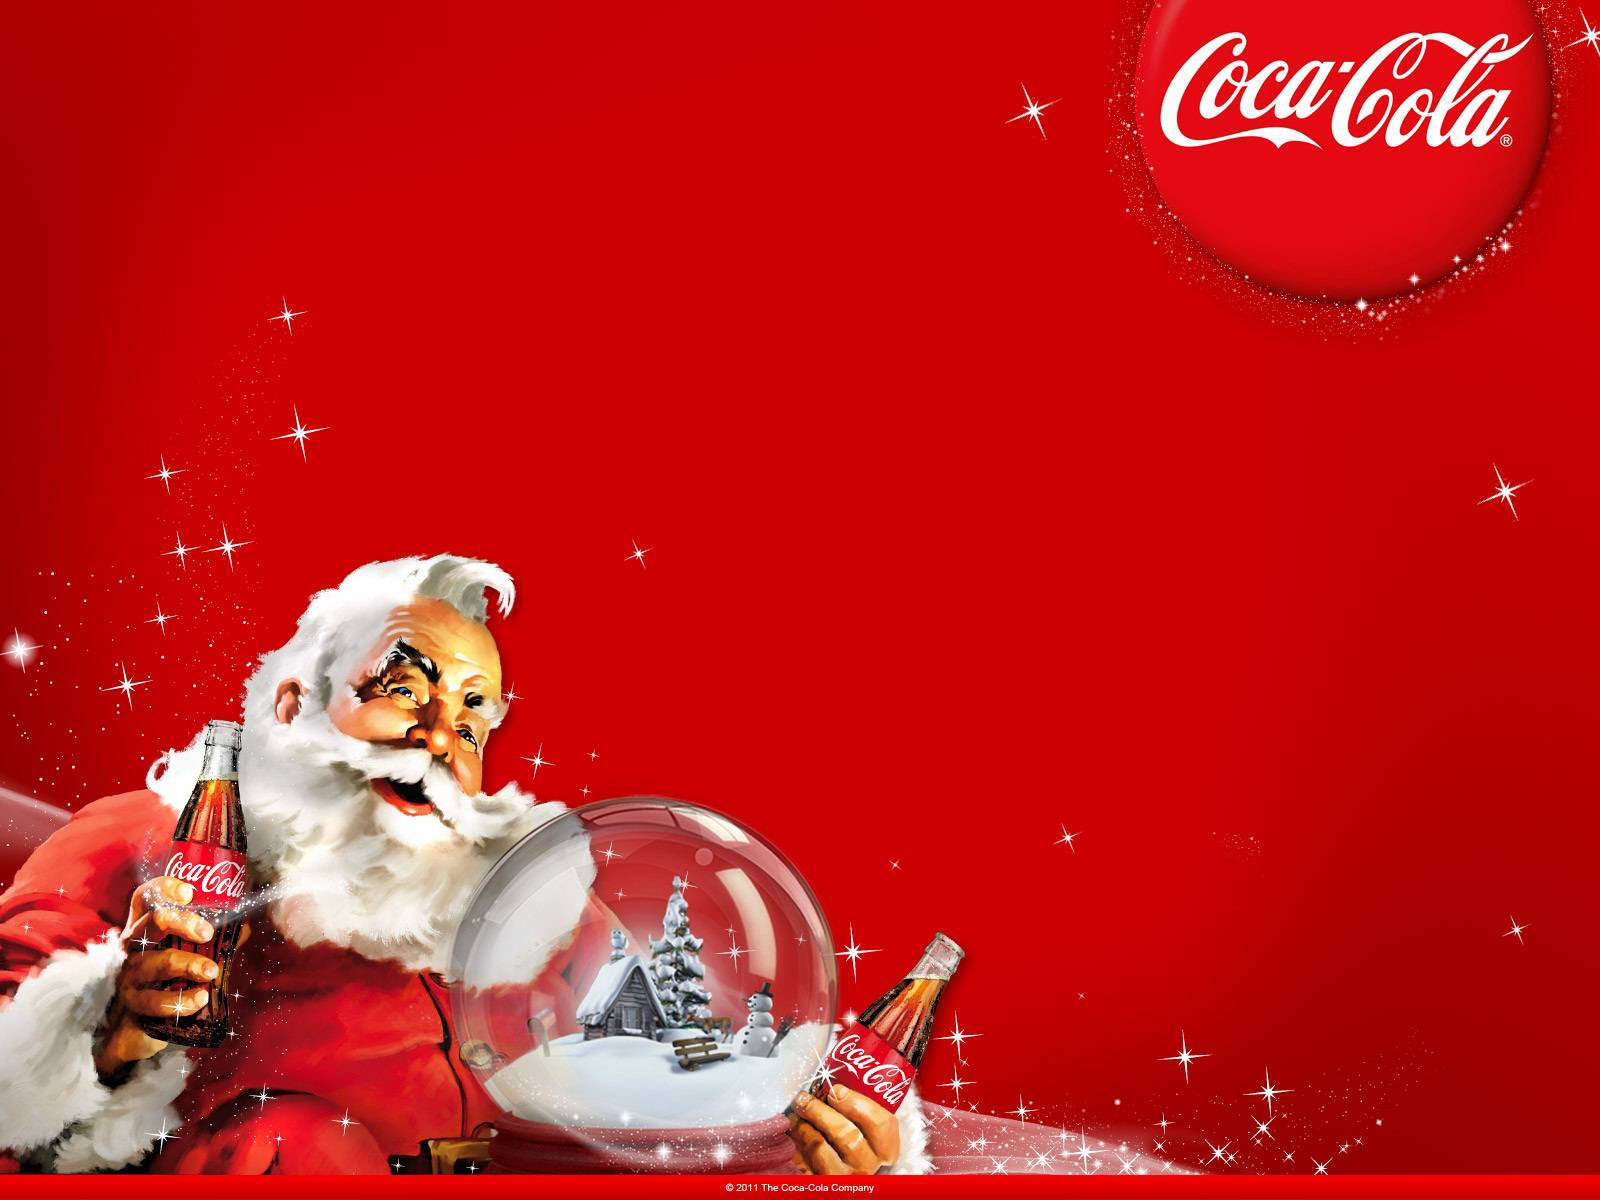 Coca Cola Christmas Truck HD Wallpaper For 2015 1600x1200